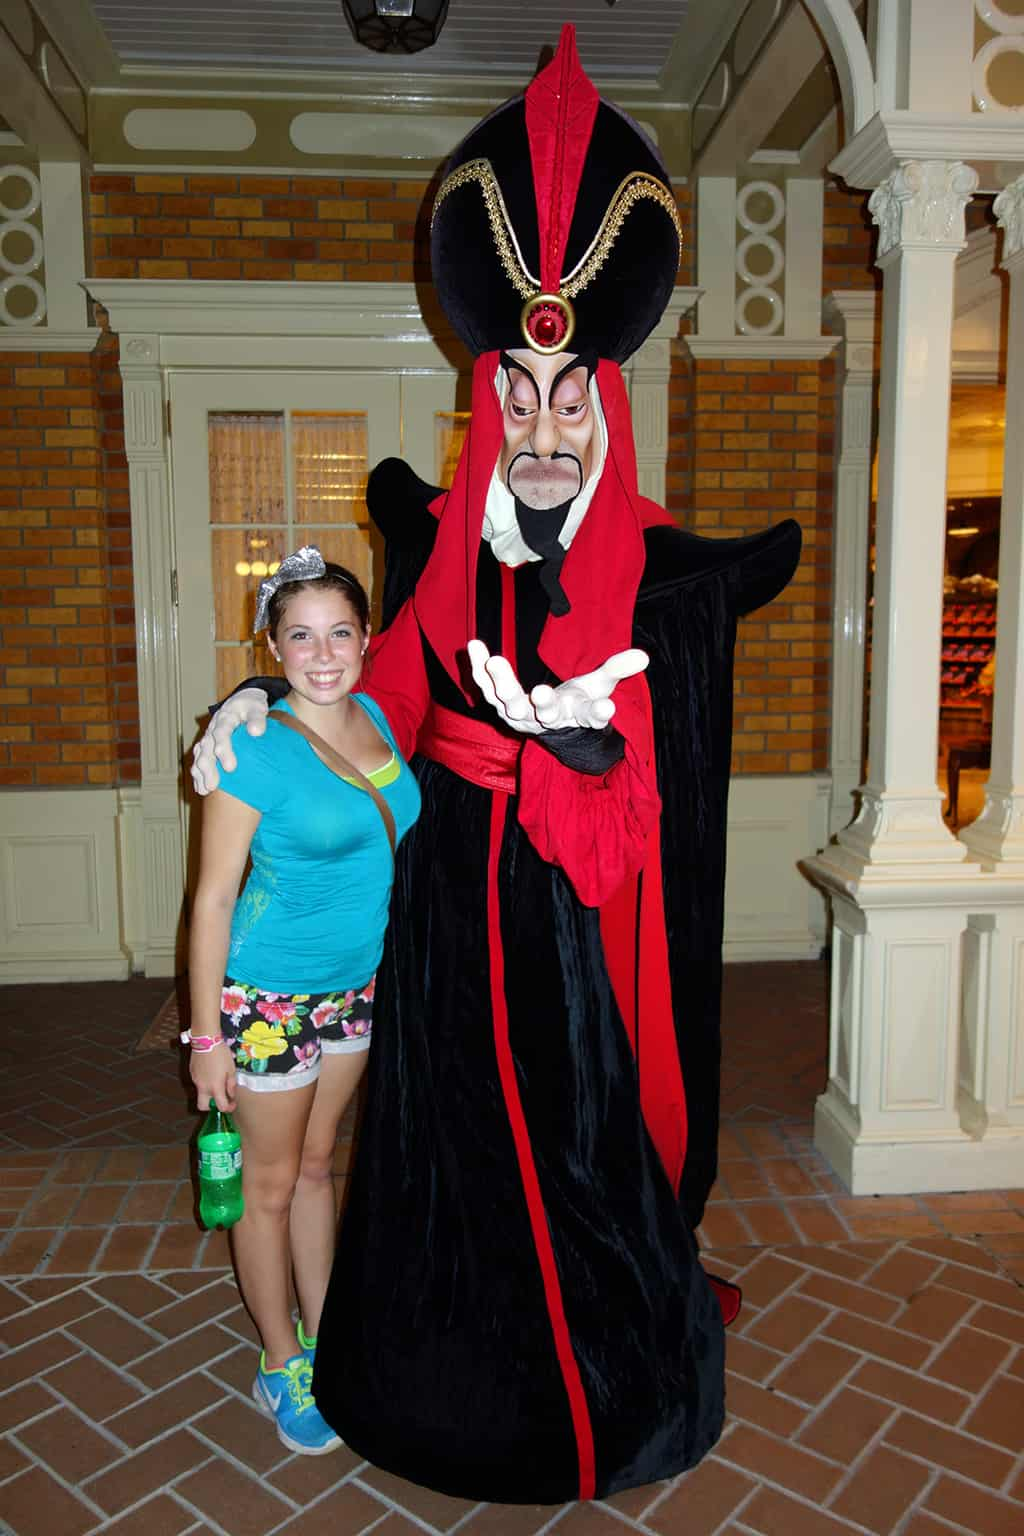 Jafar.  Our intrepid teen reporter only got to meet two characters from running around all over the park taking photos and getting meet and greet times.  Now her photo will be added to the hit list by management like me!